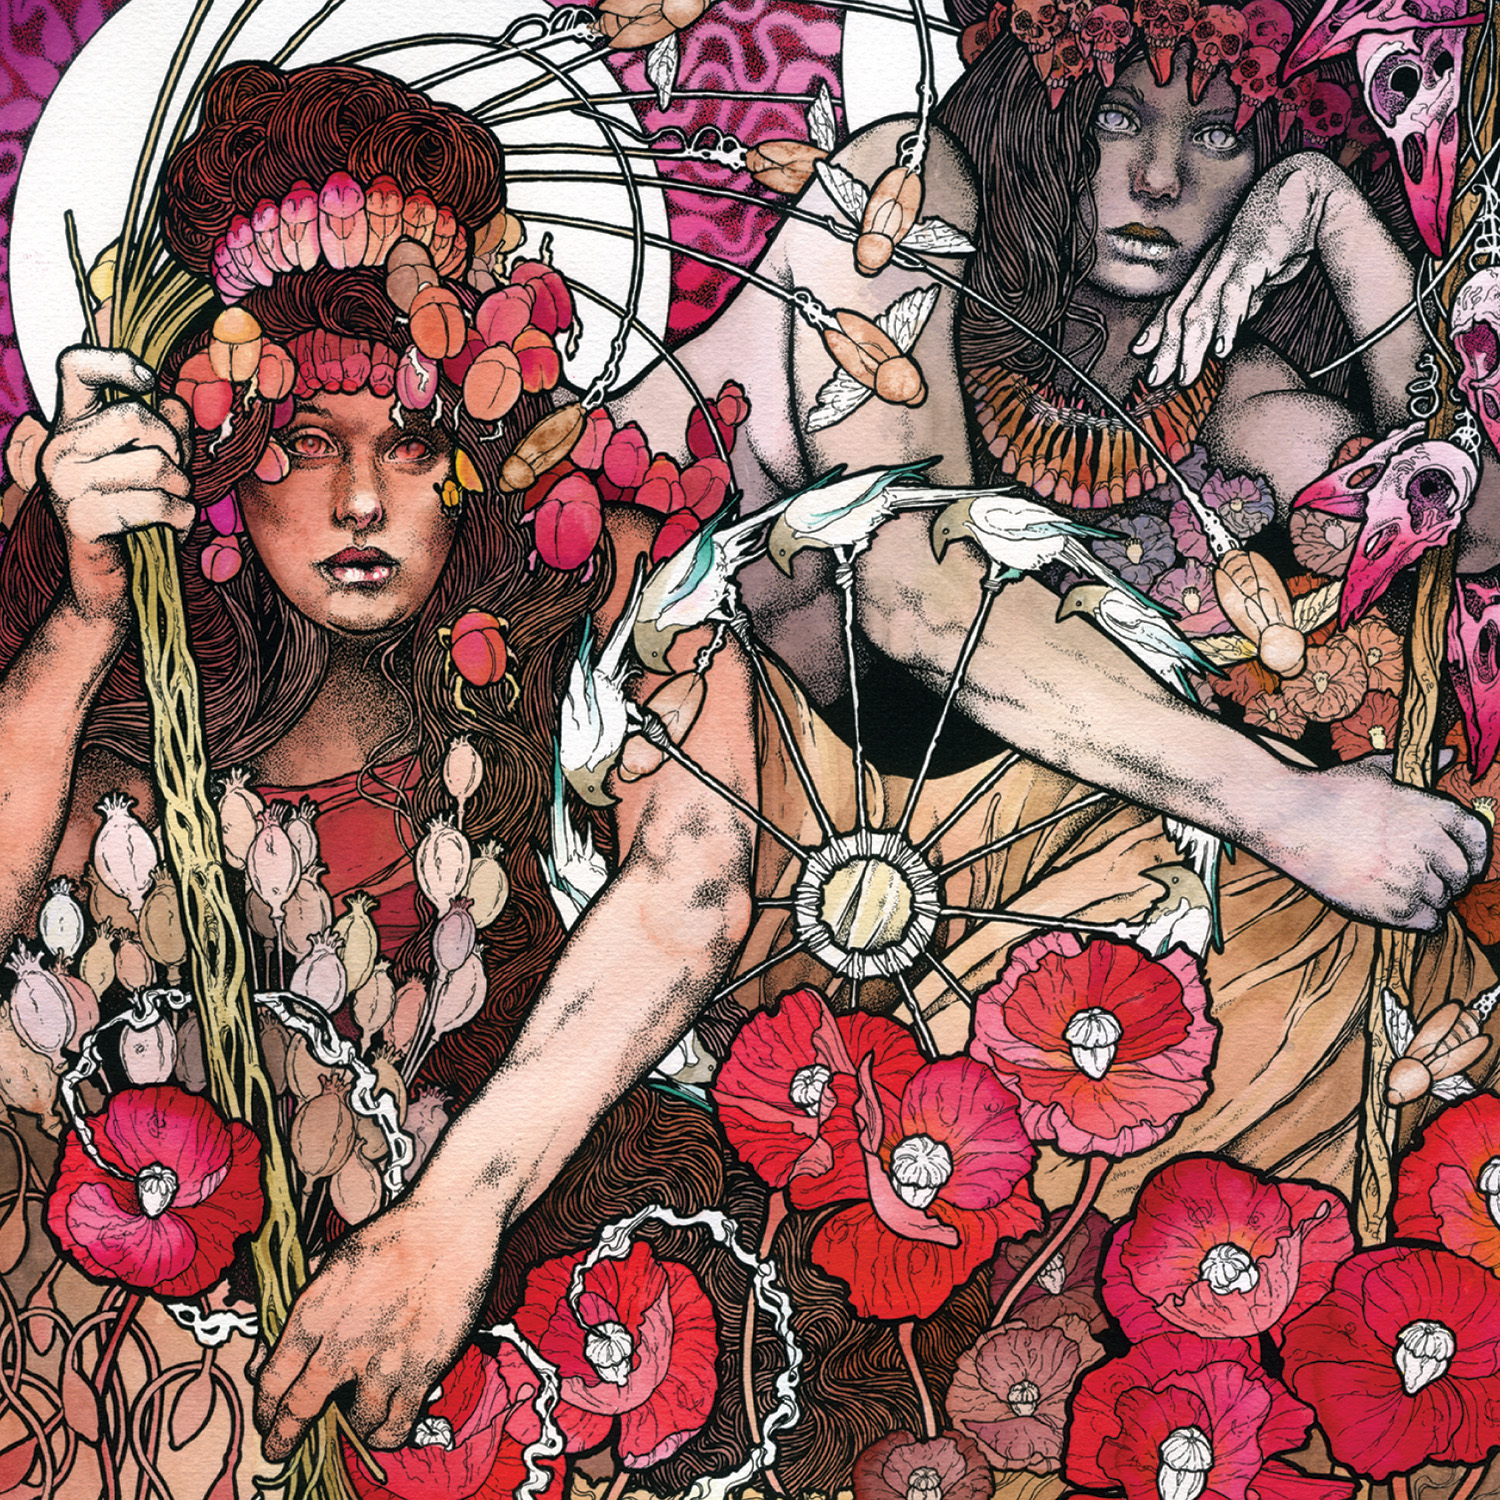 BARONESS Red Album - Vinyl 2xLP (bone white)